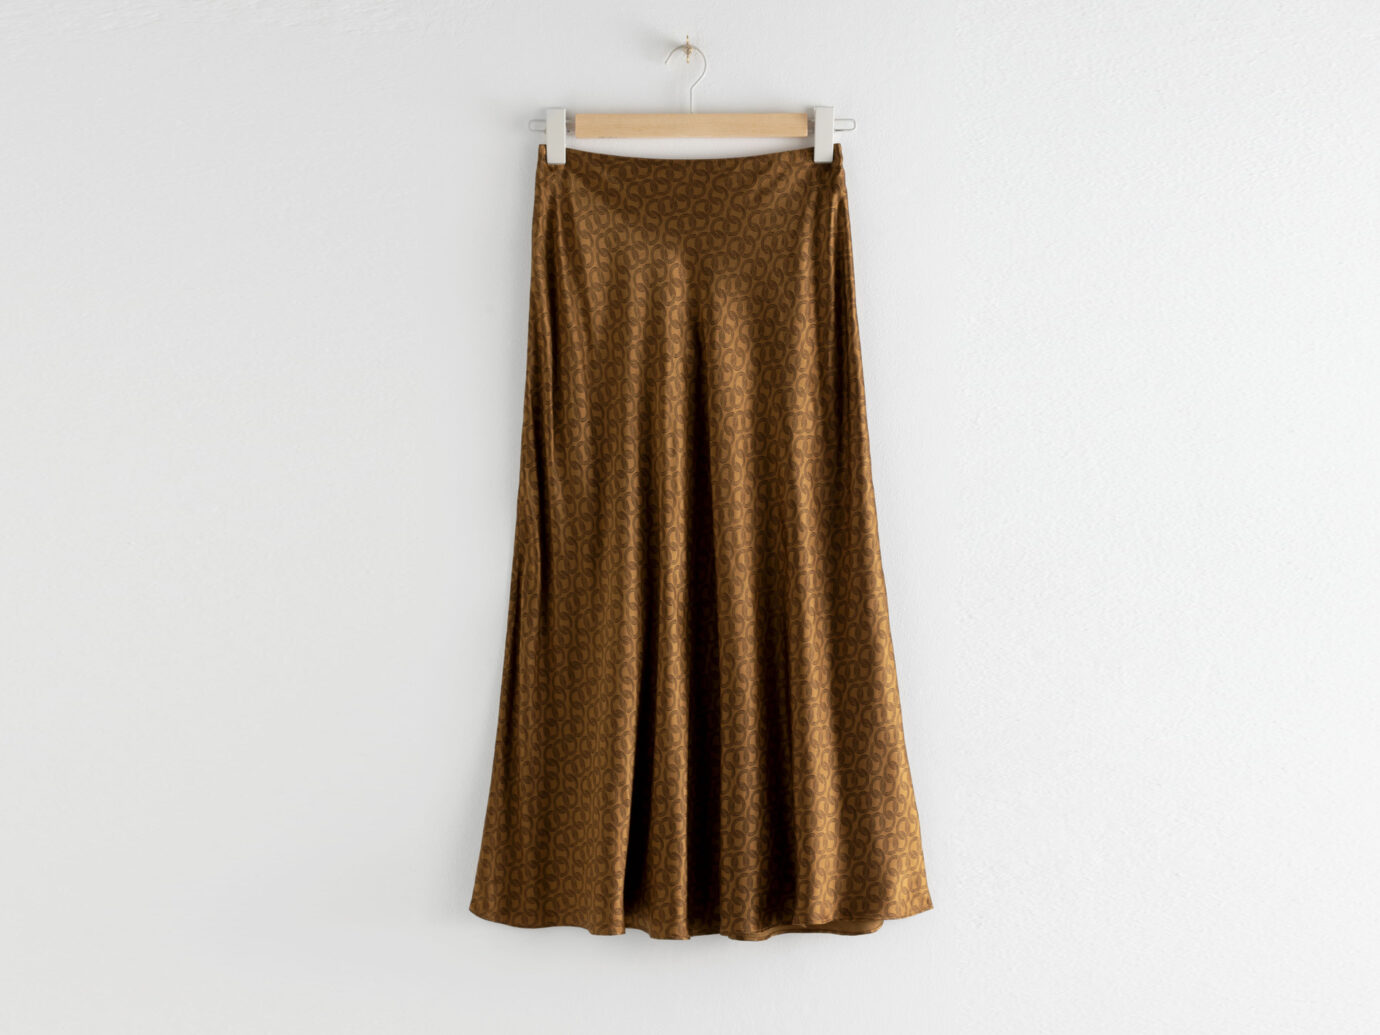 & Other Stories Chain Print Satin Midi Skirt